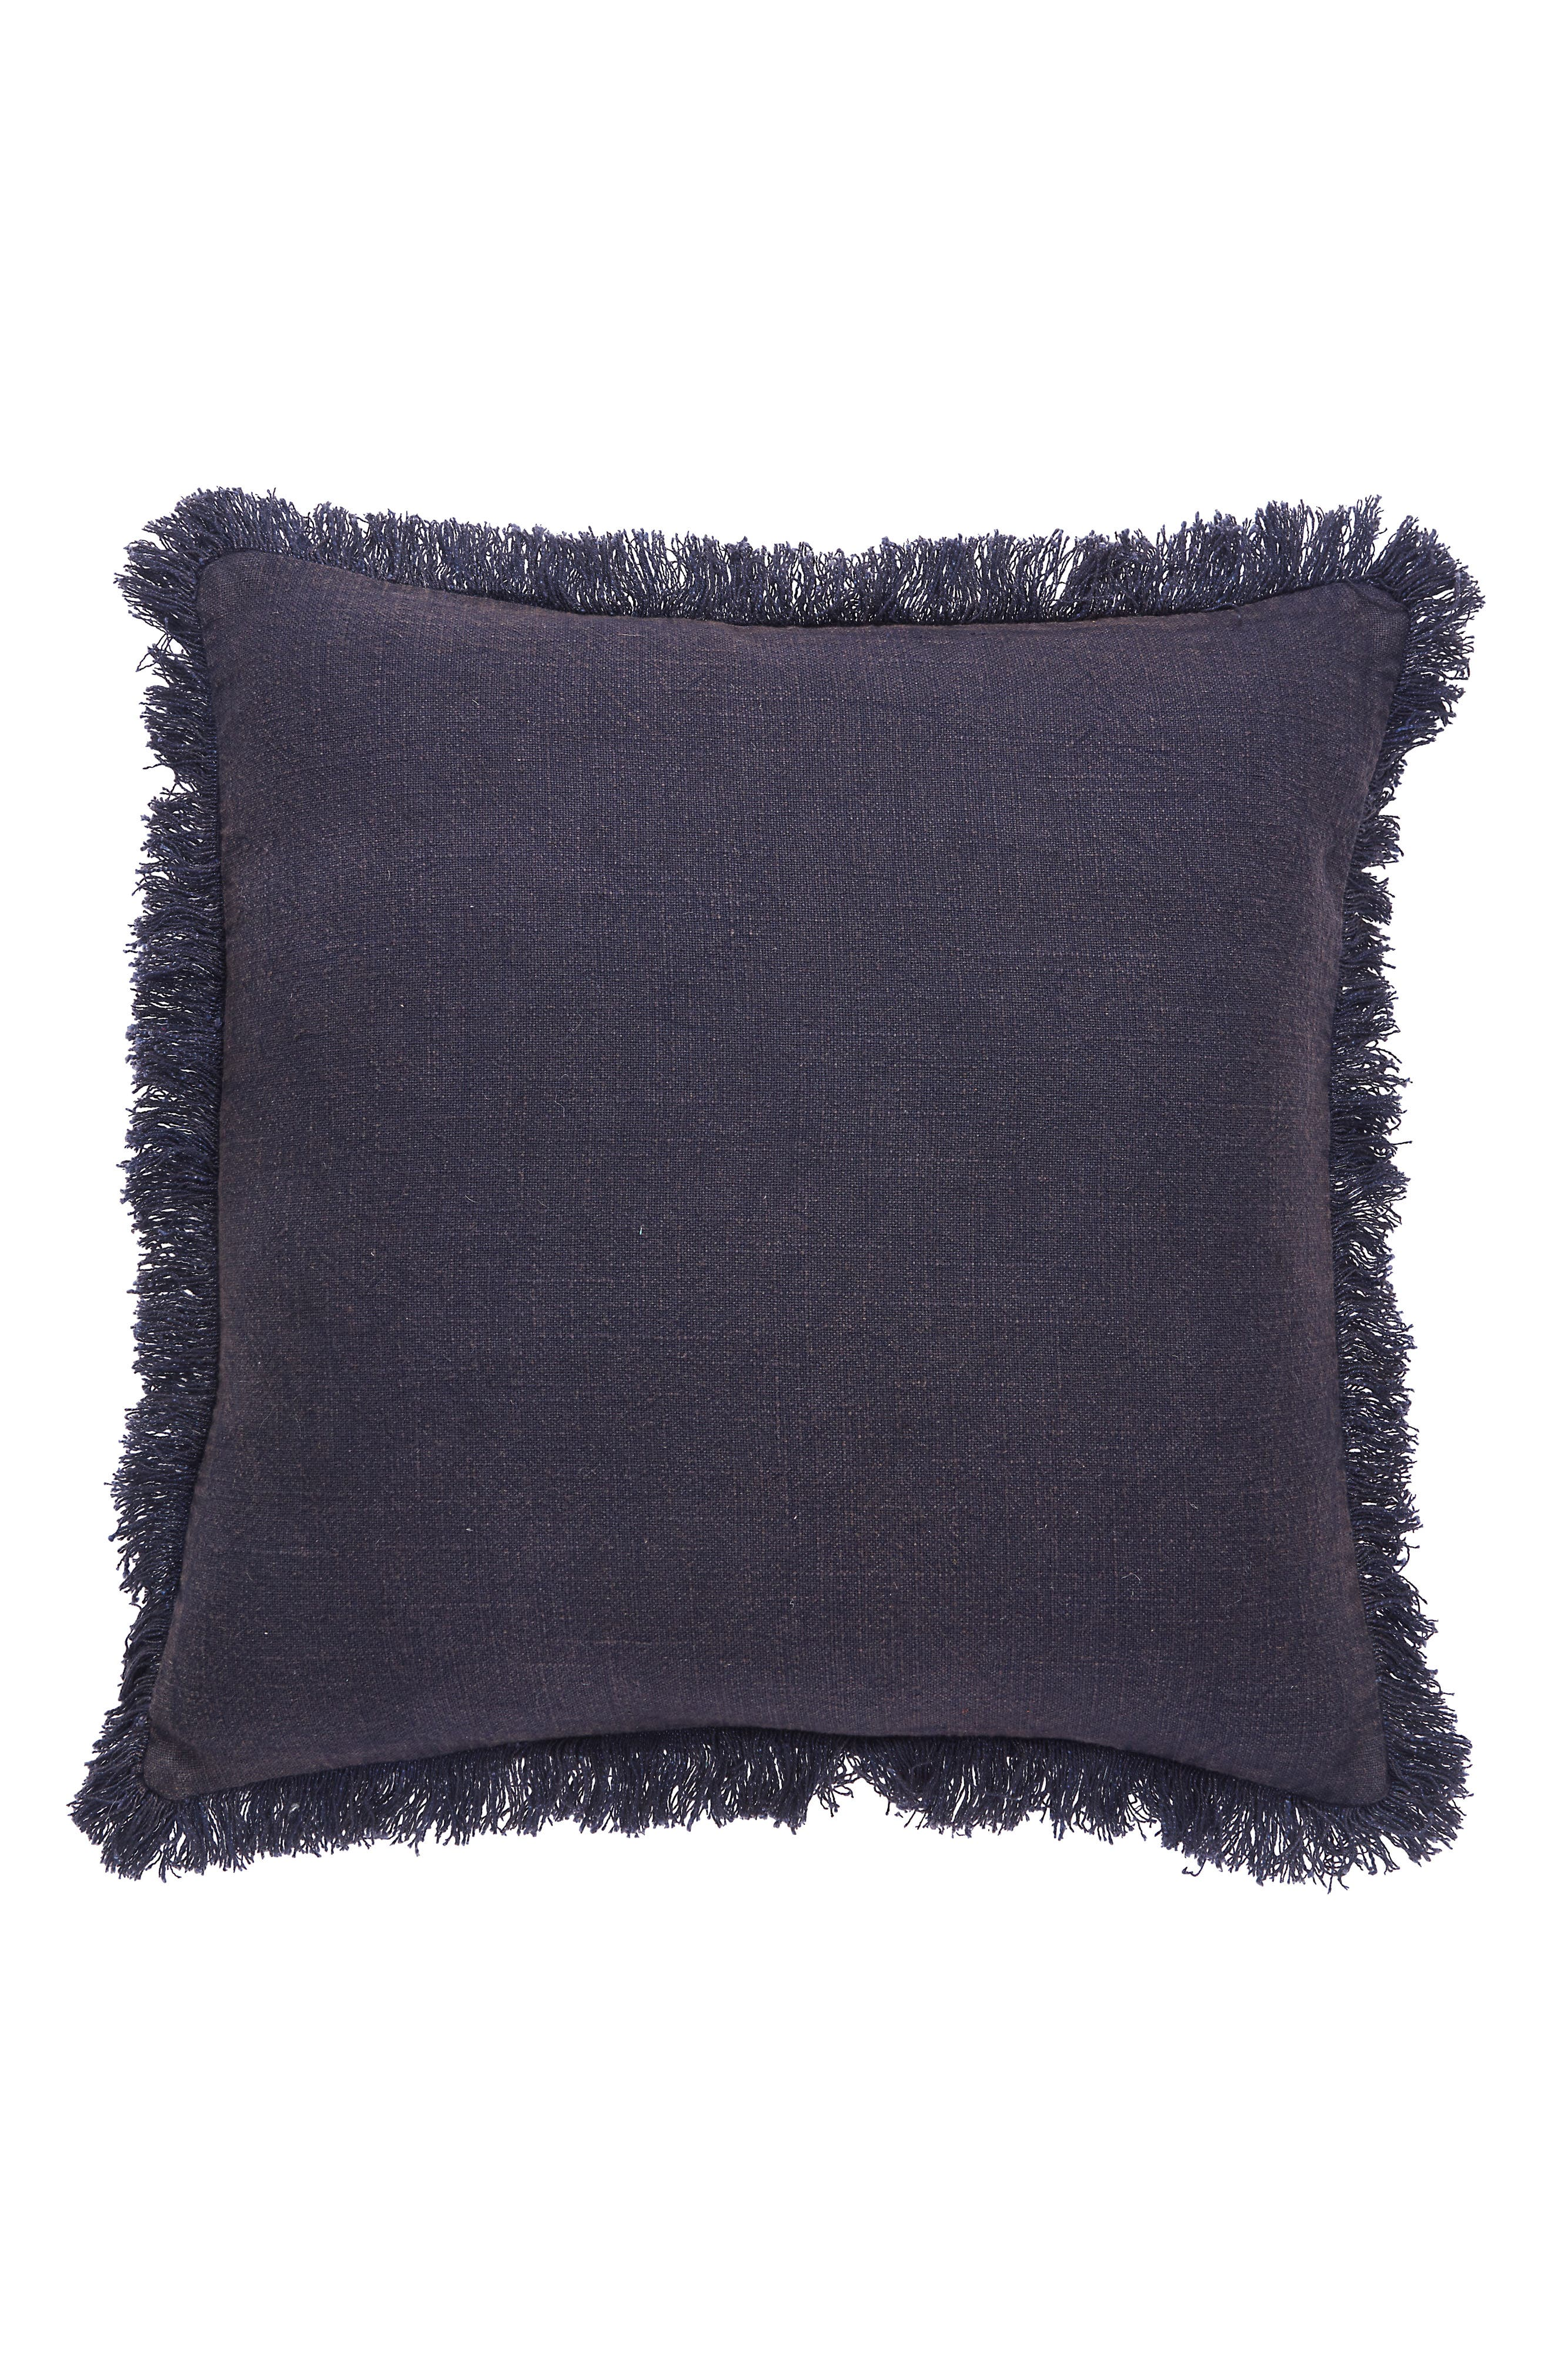 Greystone Accent Pillow,                         Main,                         color,